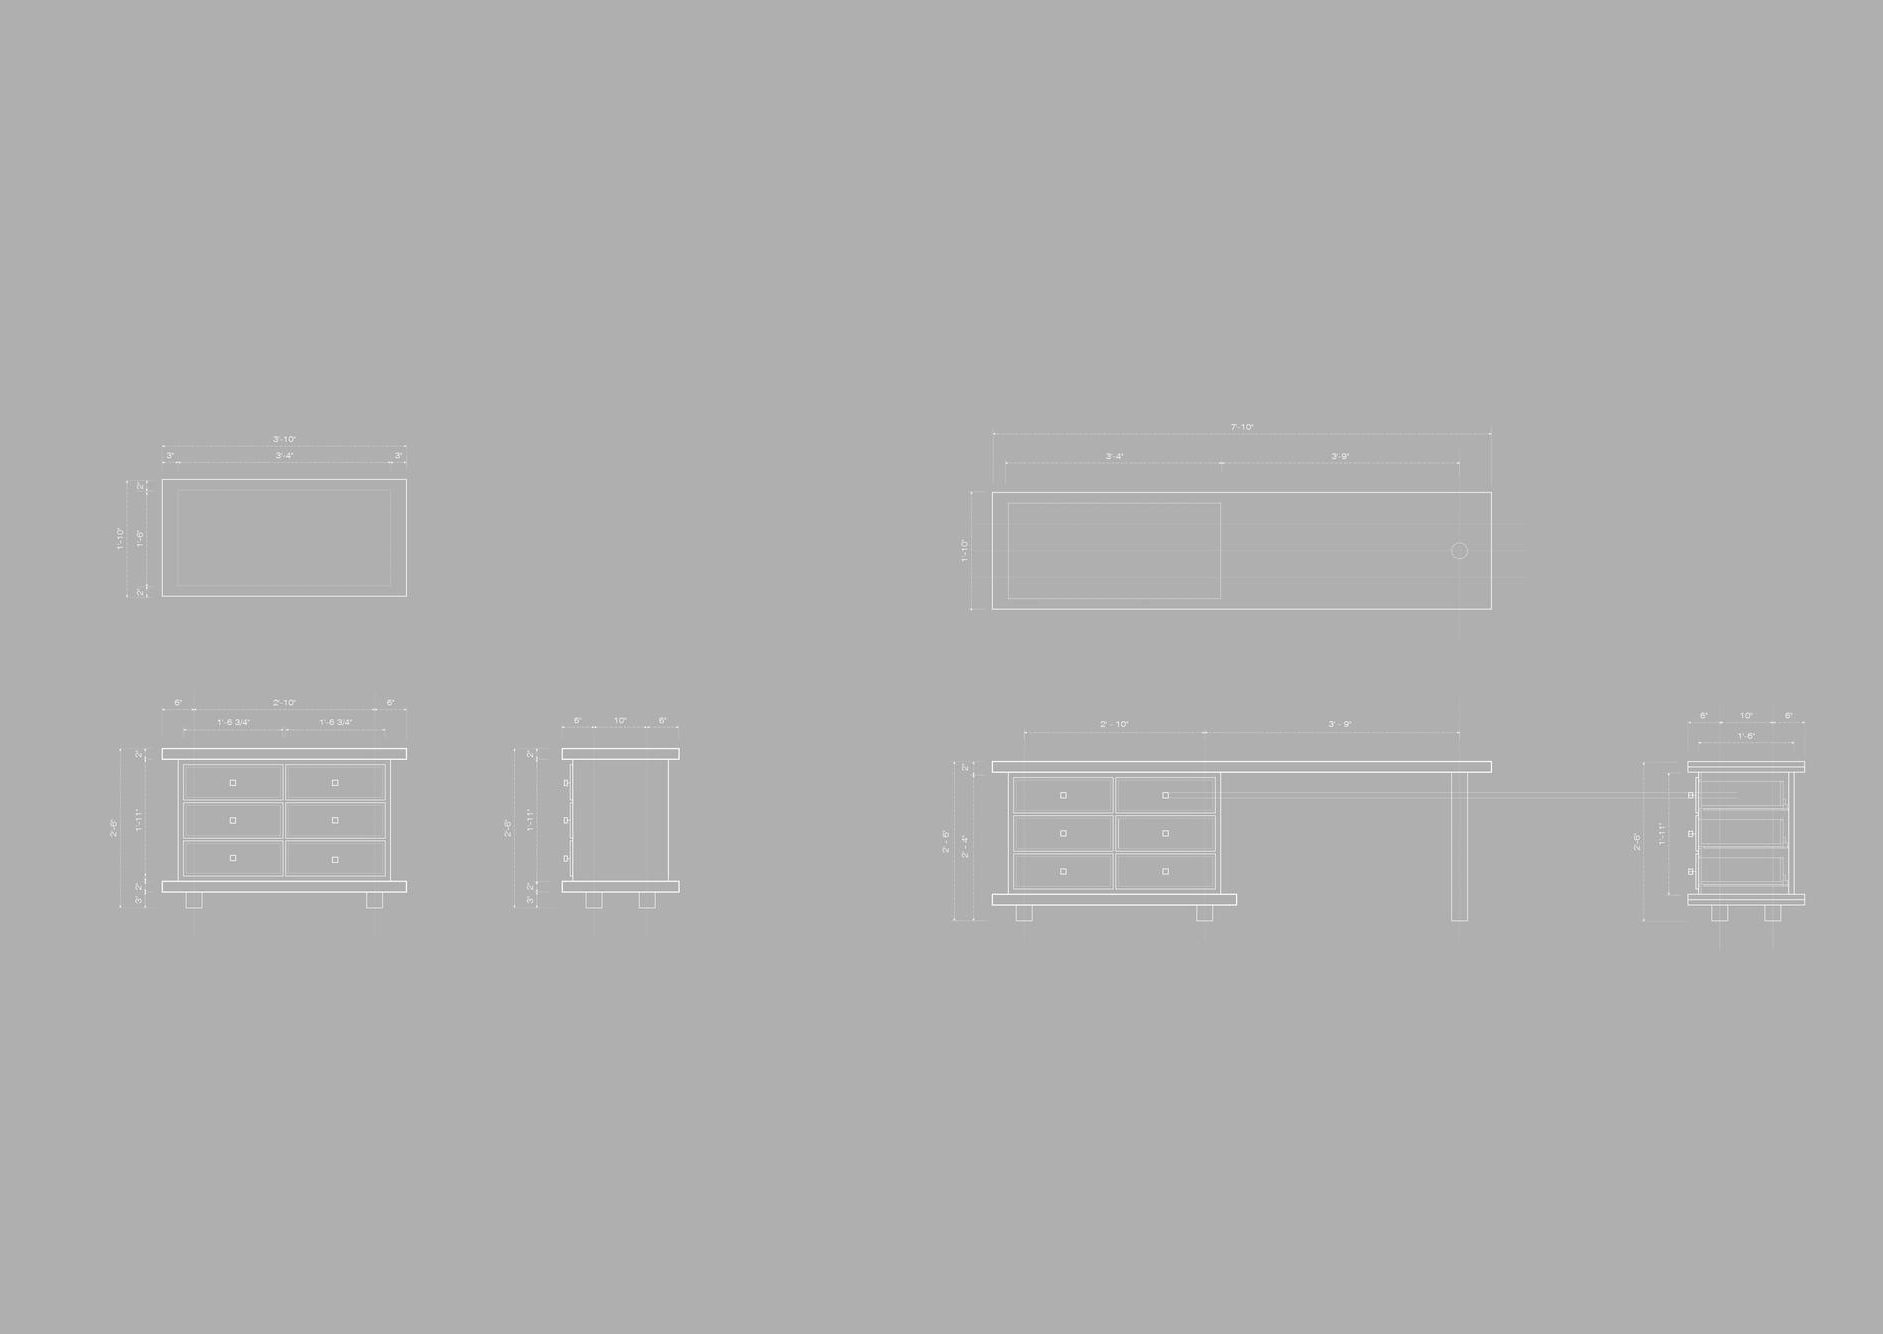 Chilmark-Dressers-_-Gray-Drawings-1883x1334 strategic design consultancy